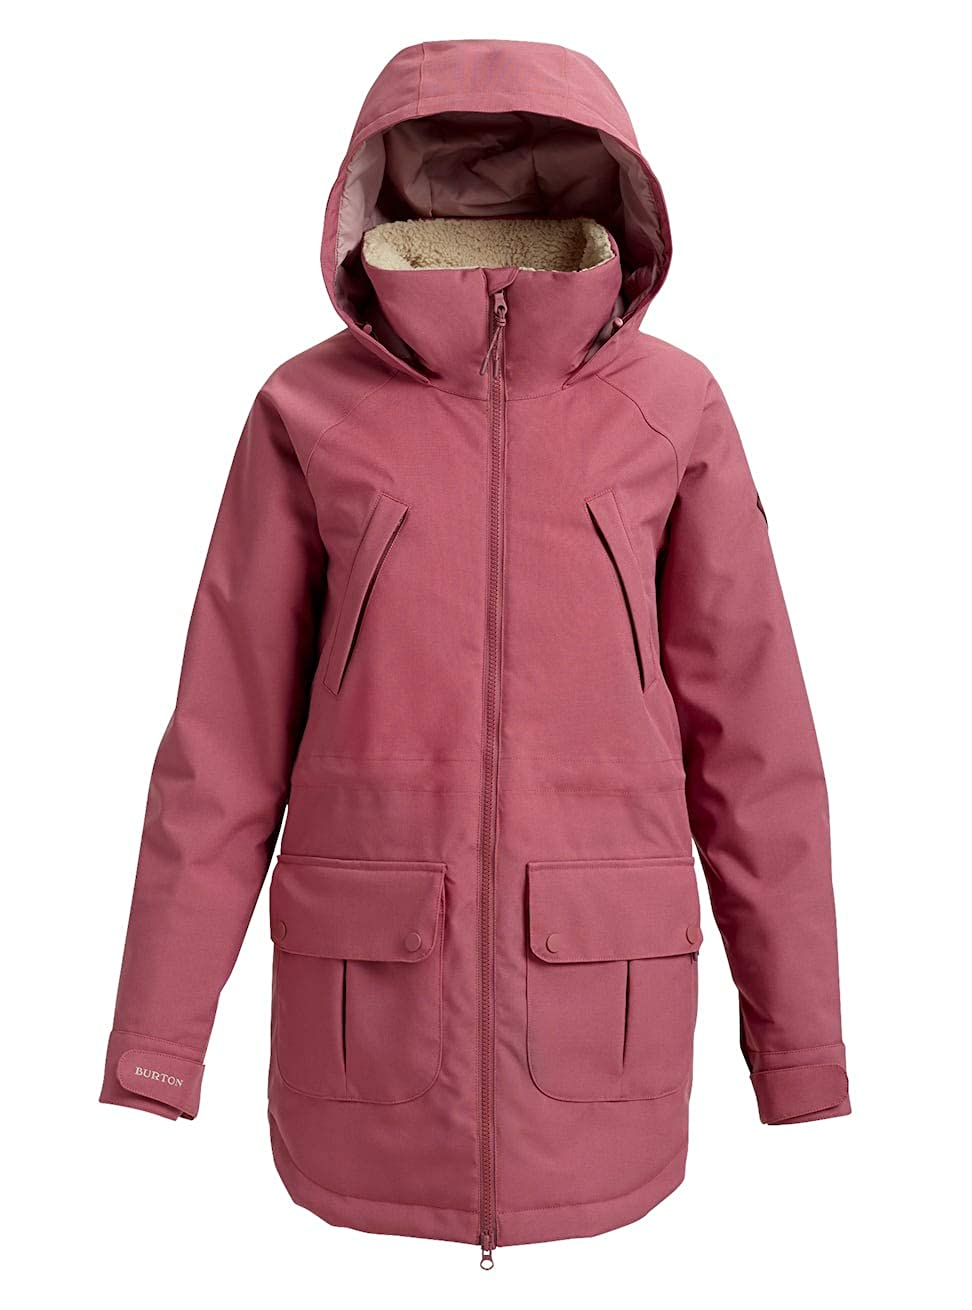 Burton OUTERWEAR レディース Large Rose Brown B07F76FYN8